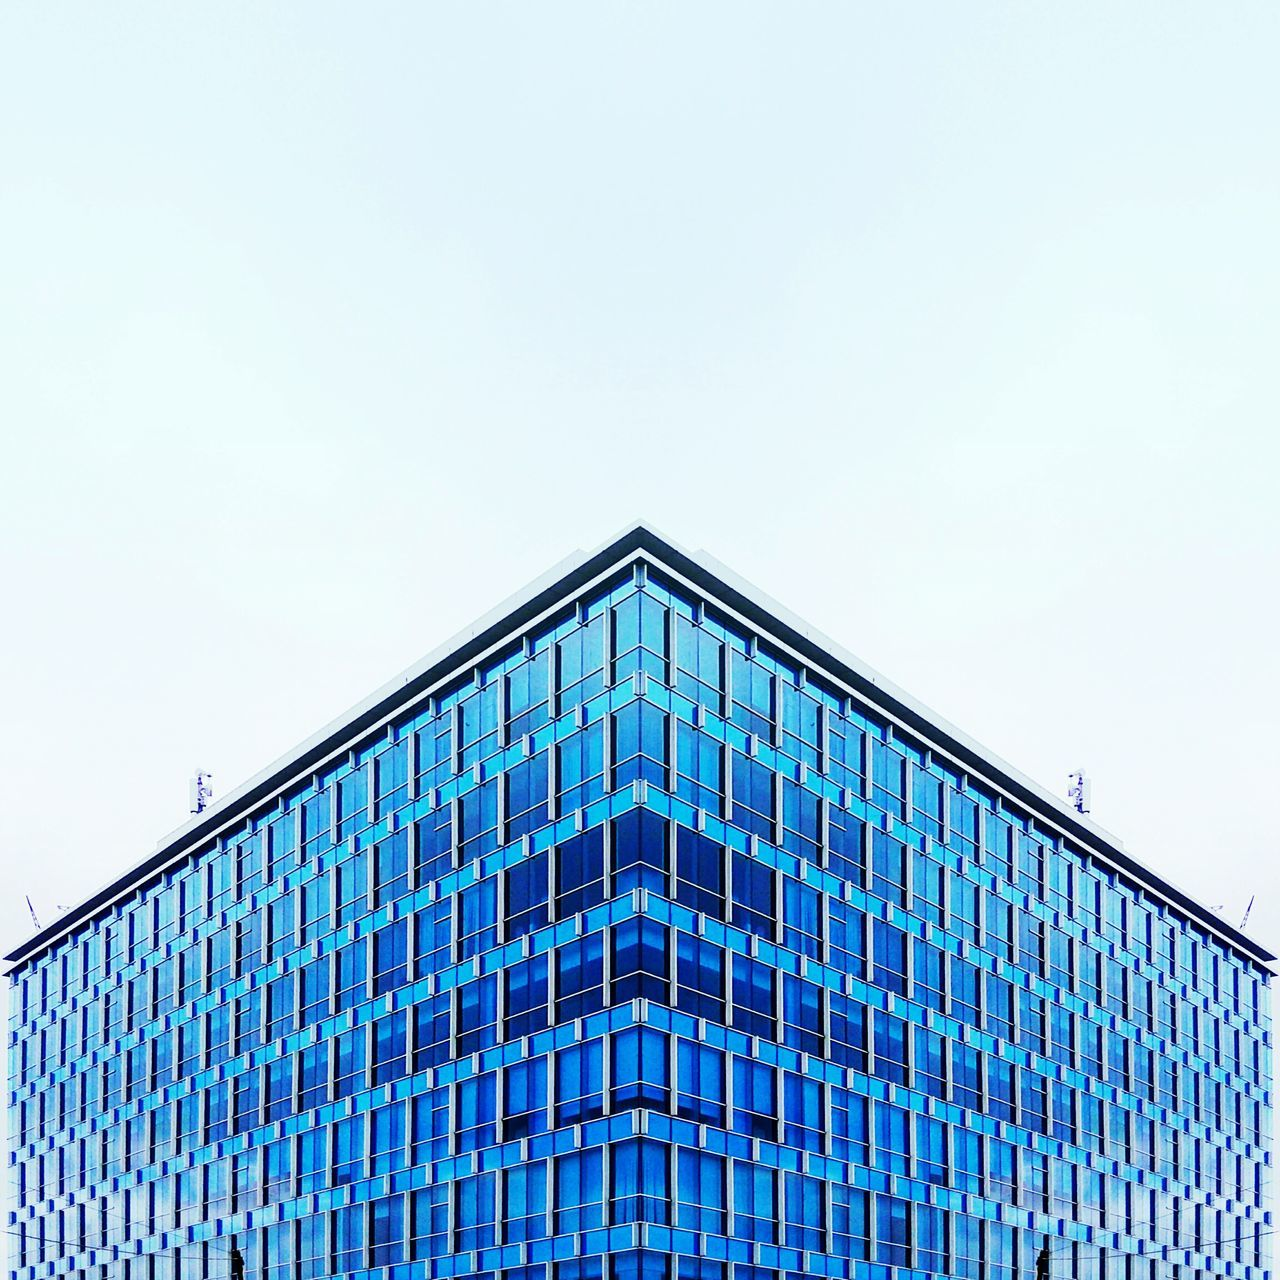 Minimalist Architecture No People Architecture Architecture Mobile Photography Modern Architectural Detail Building Mobilephotography Architectural Urbanphotography Urban Geometry Architecture_collection Architecture Photography Architecturephotography Minimalist